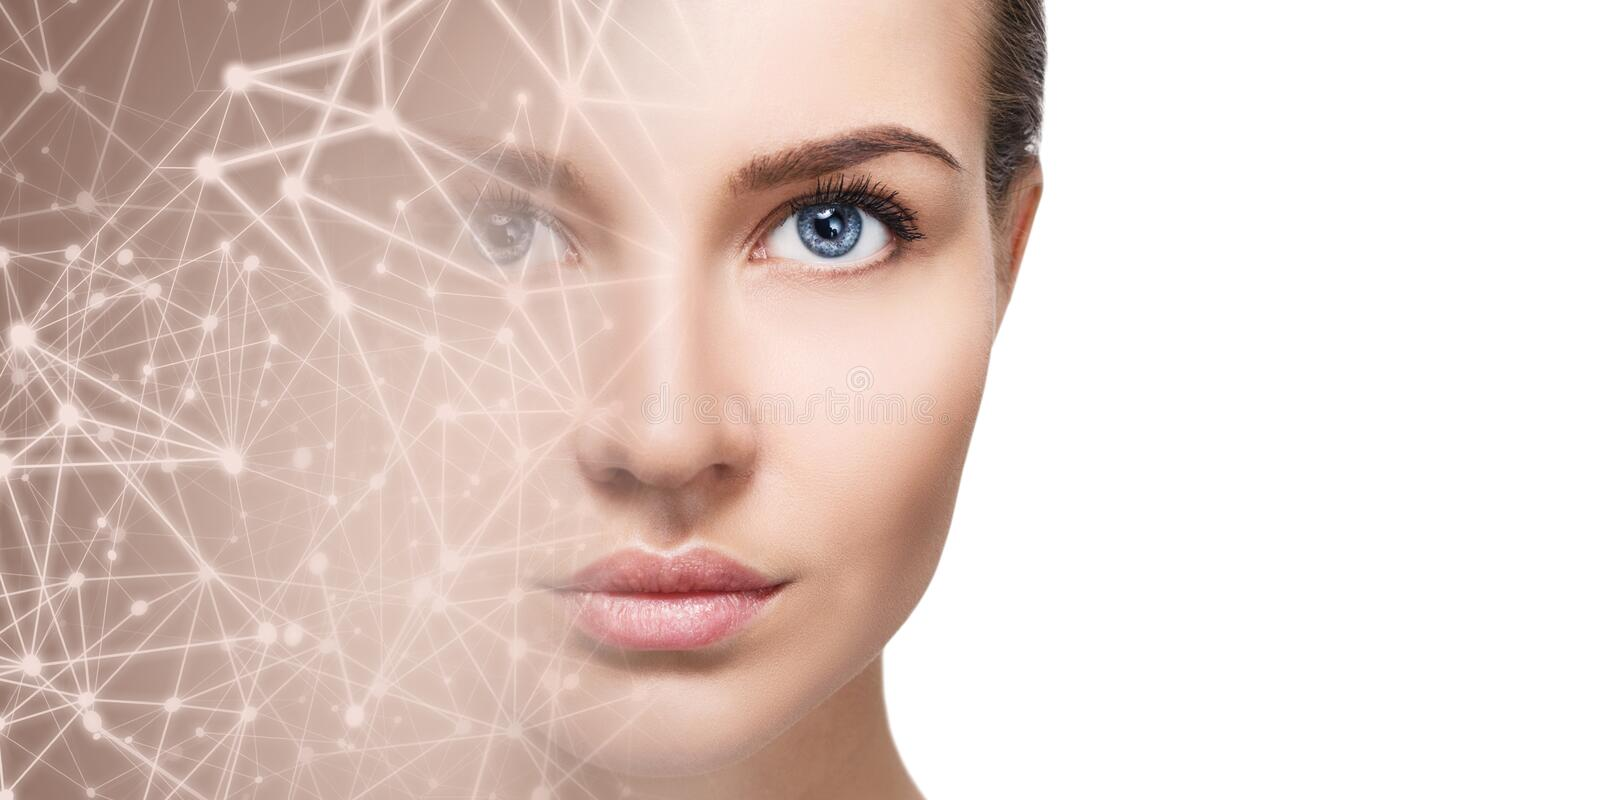 Half face of young woman disappearing in starry virtual space. stock photo